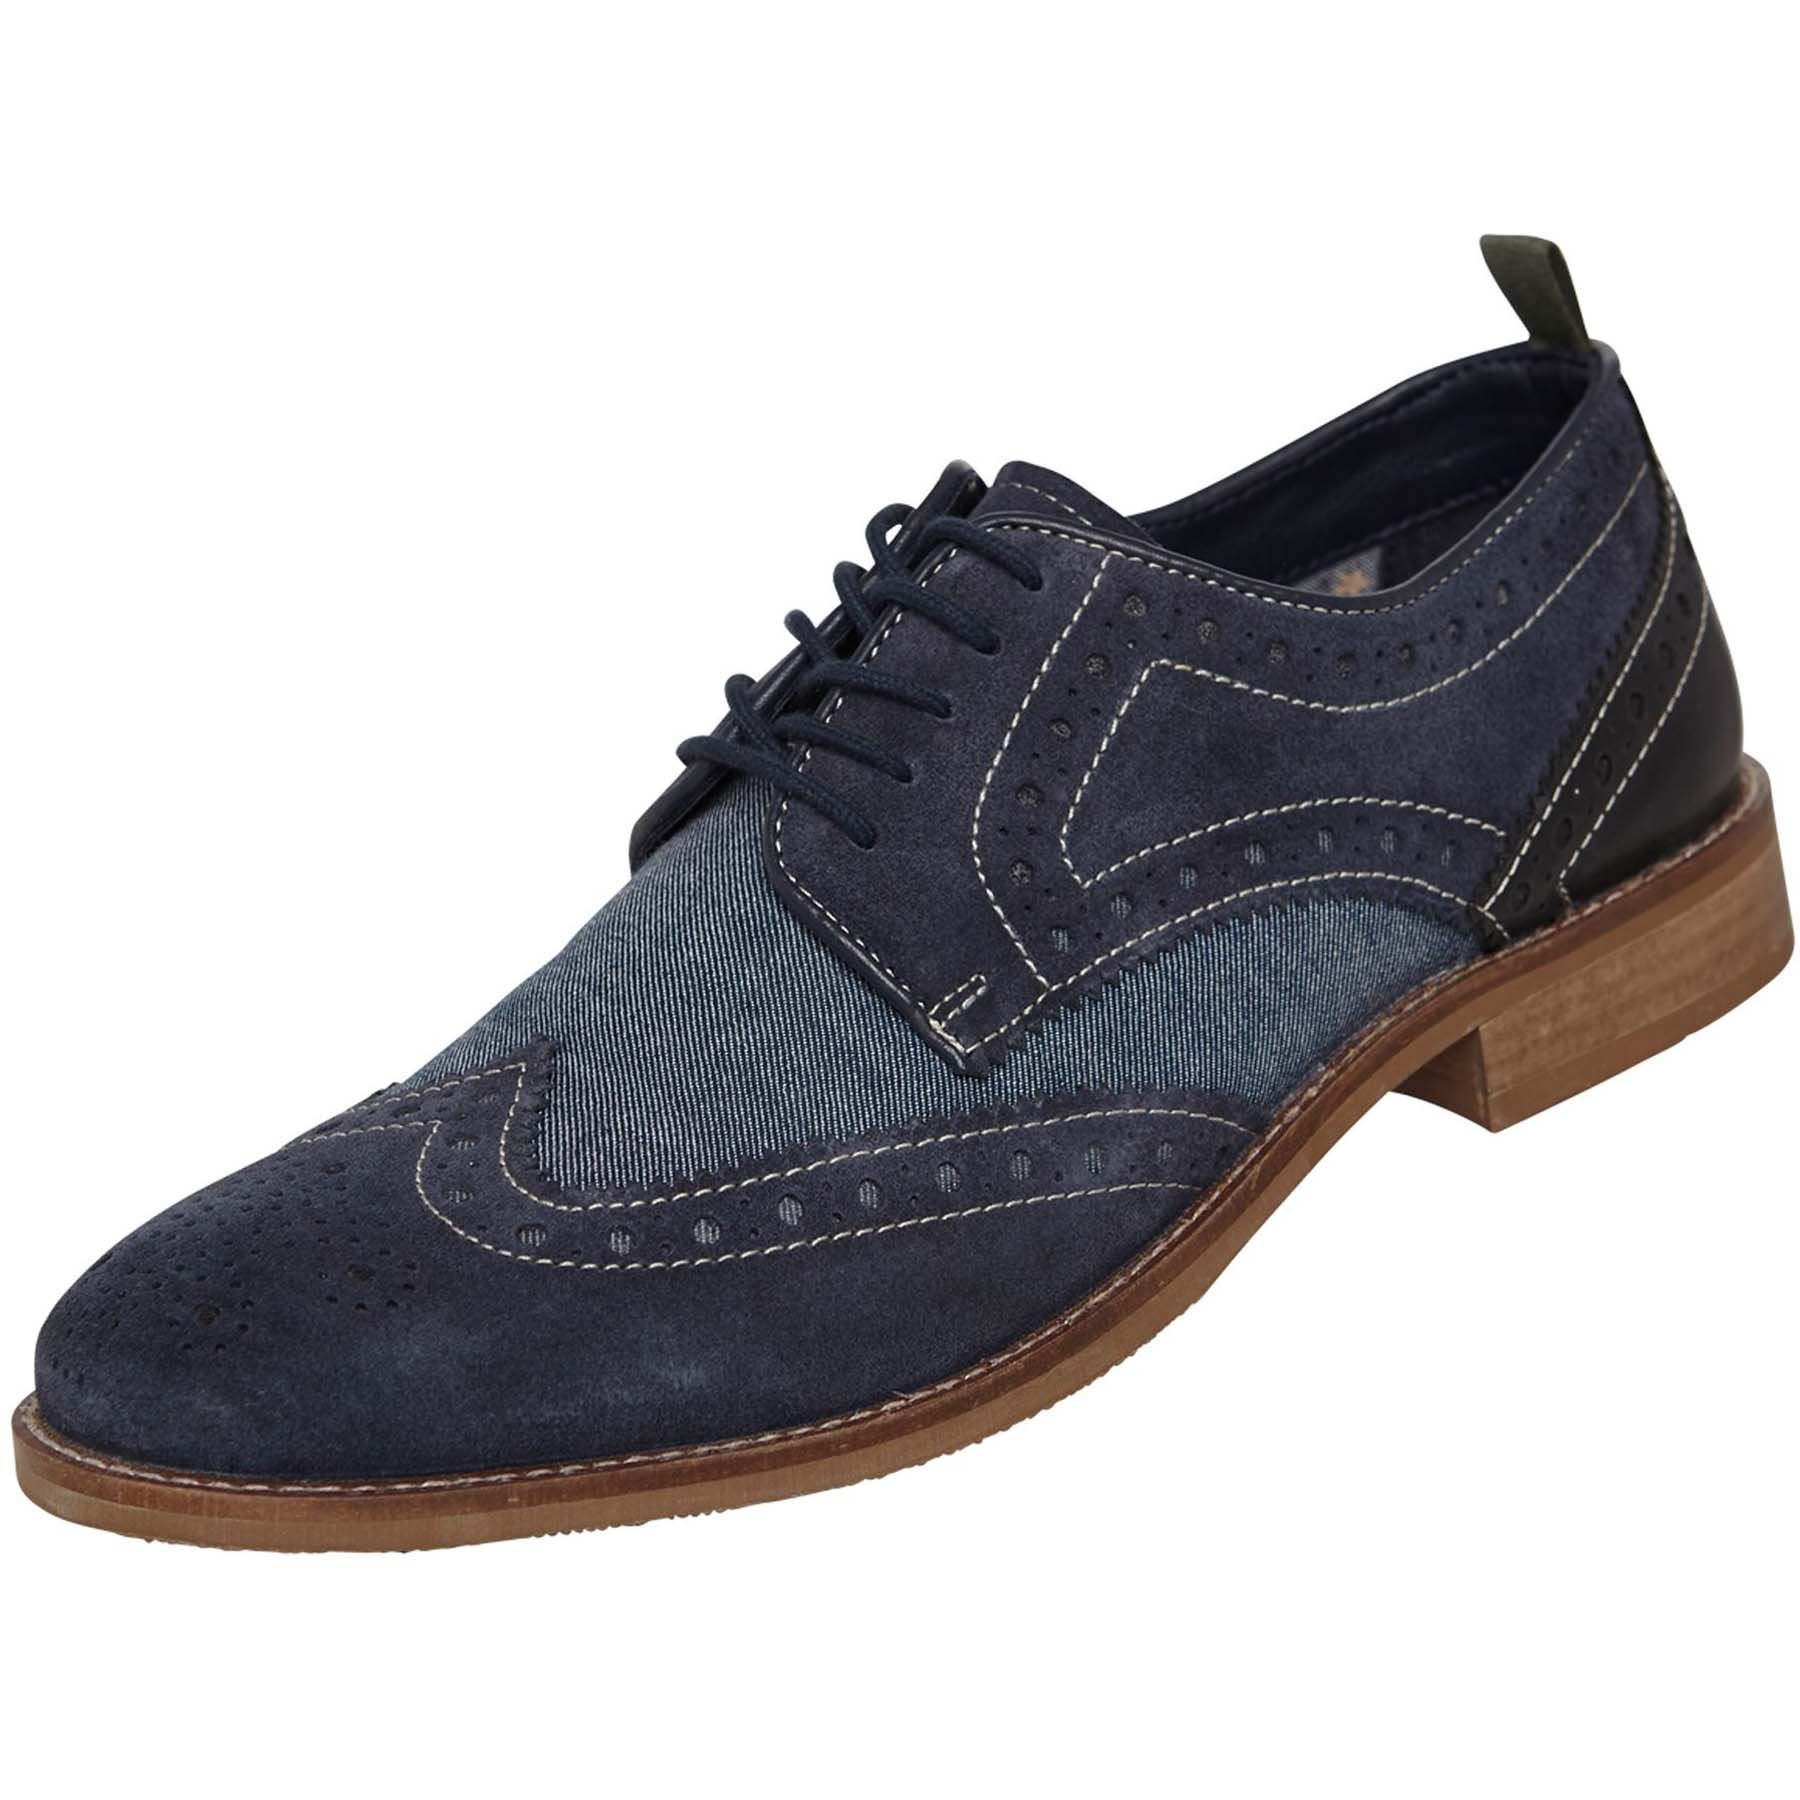 Chaussures BOTTES BOTTES homme 43 Bleu marine 8f2504cfd9f